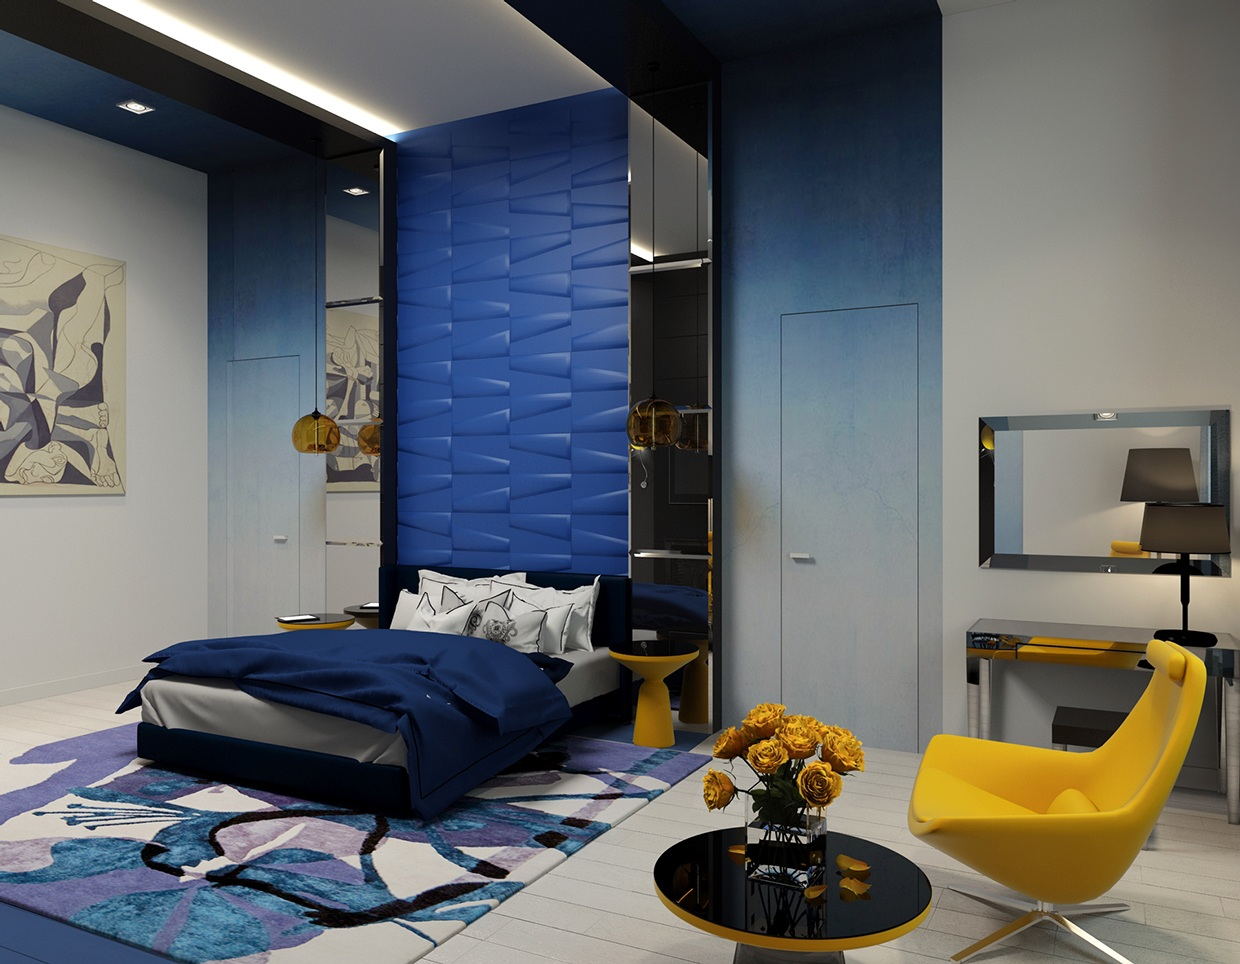 Blue and yellow bedroom interior design ideas - Blue white yellow bedroom ...